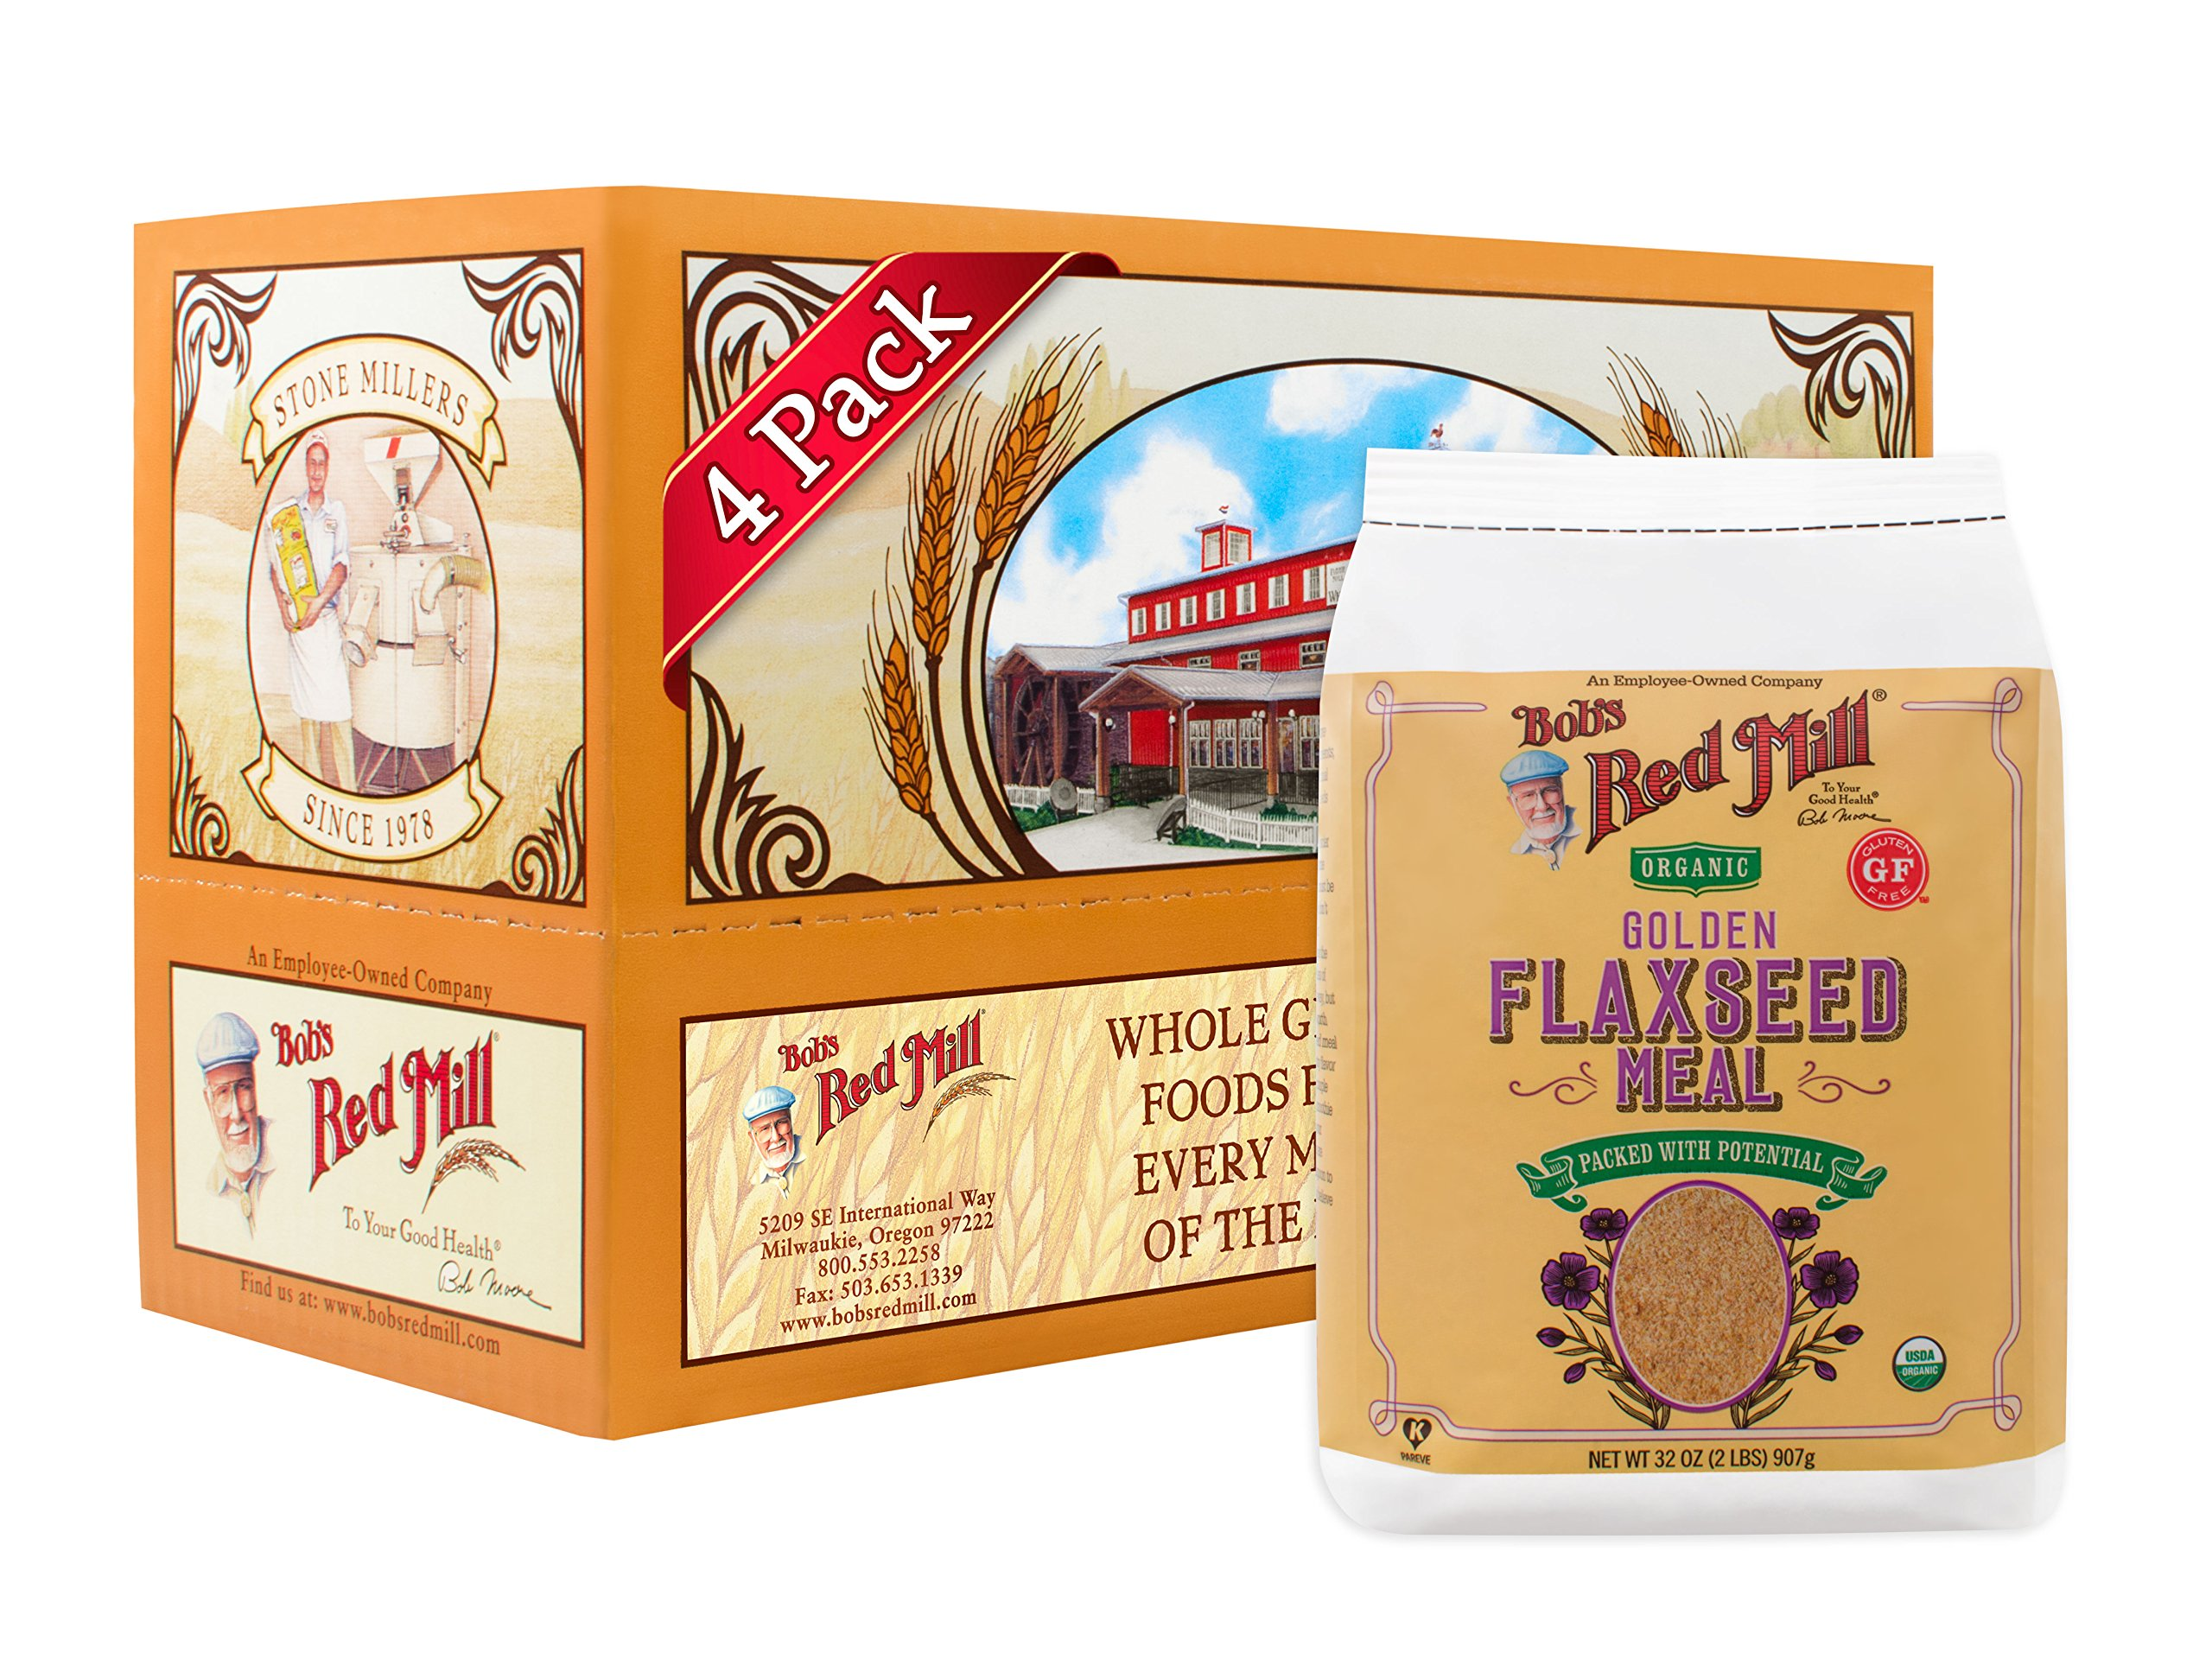 Bob's Red Mill - Resealable Organic Golden Flaxseed Meal, 32 Oz (4 Pack) by Bob's Red Mill